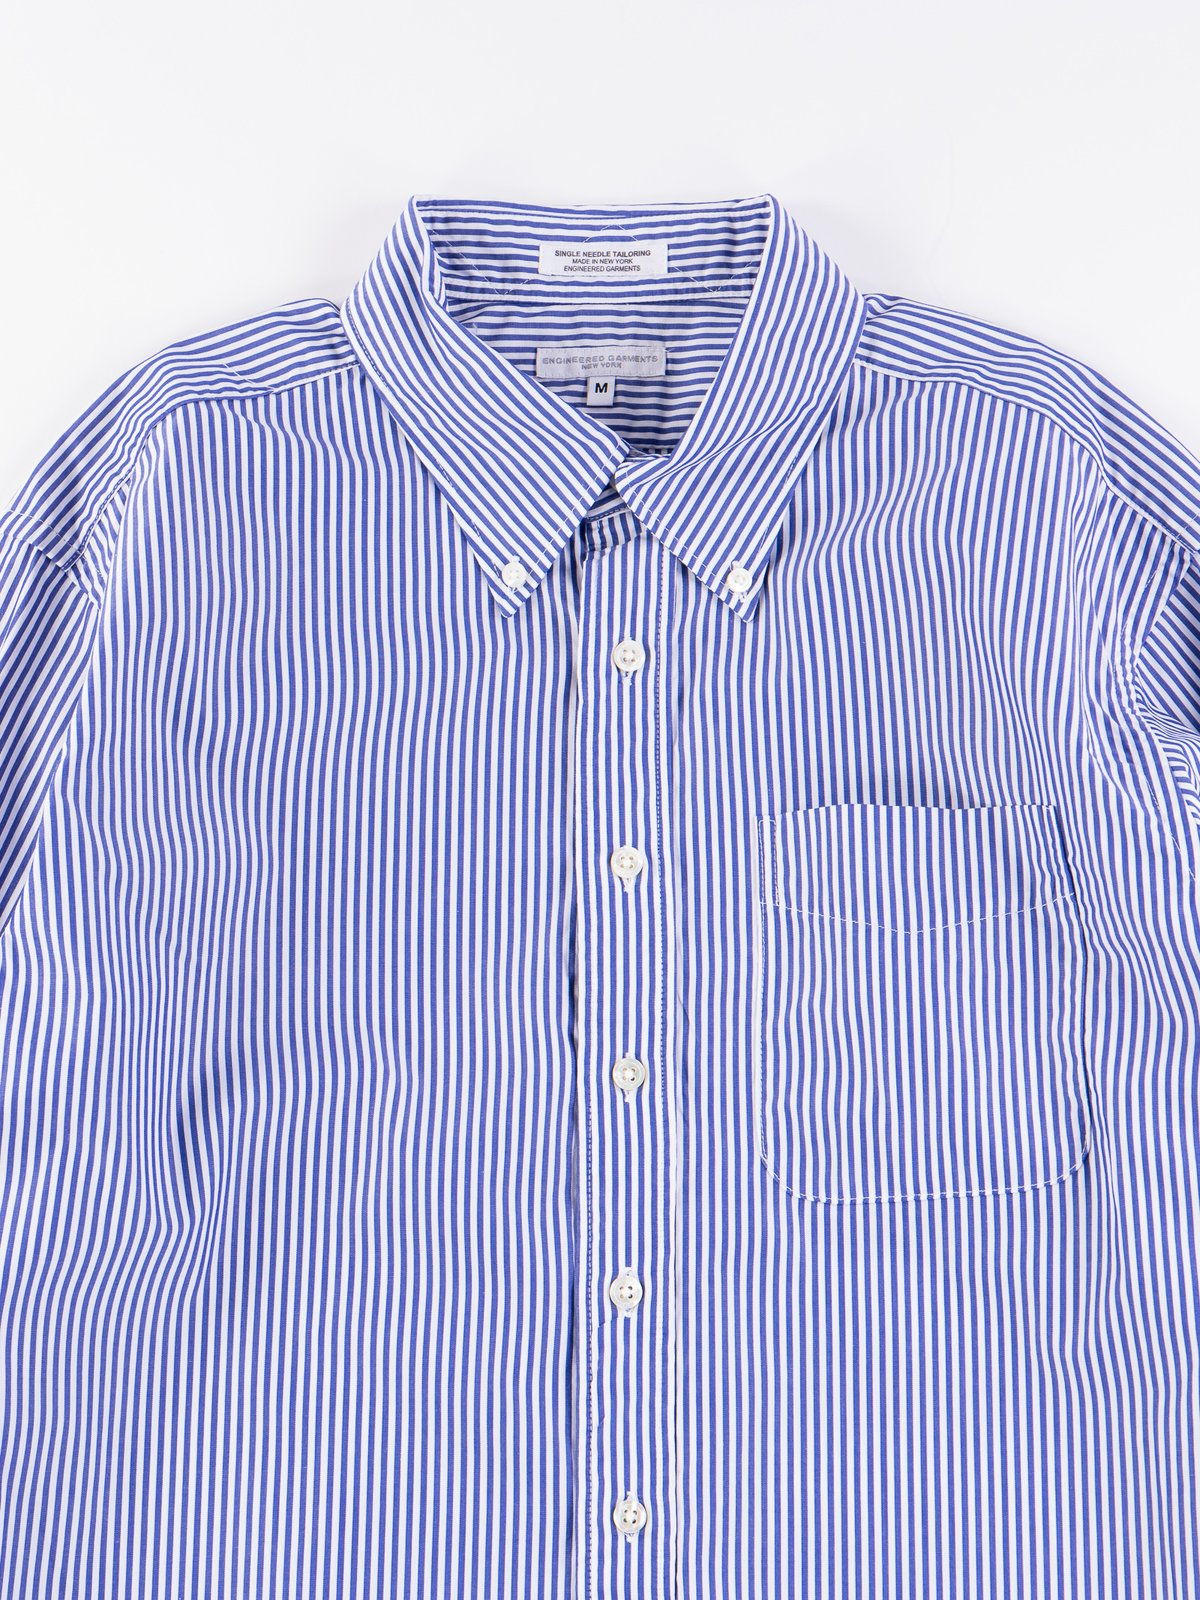 Blue/White Candy Stripe Broadcloth 19th Century BD Shirt - Image 4